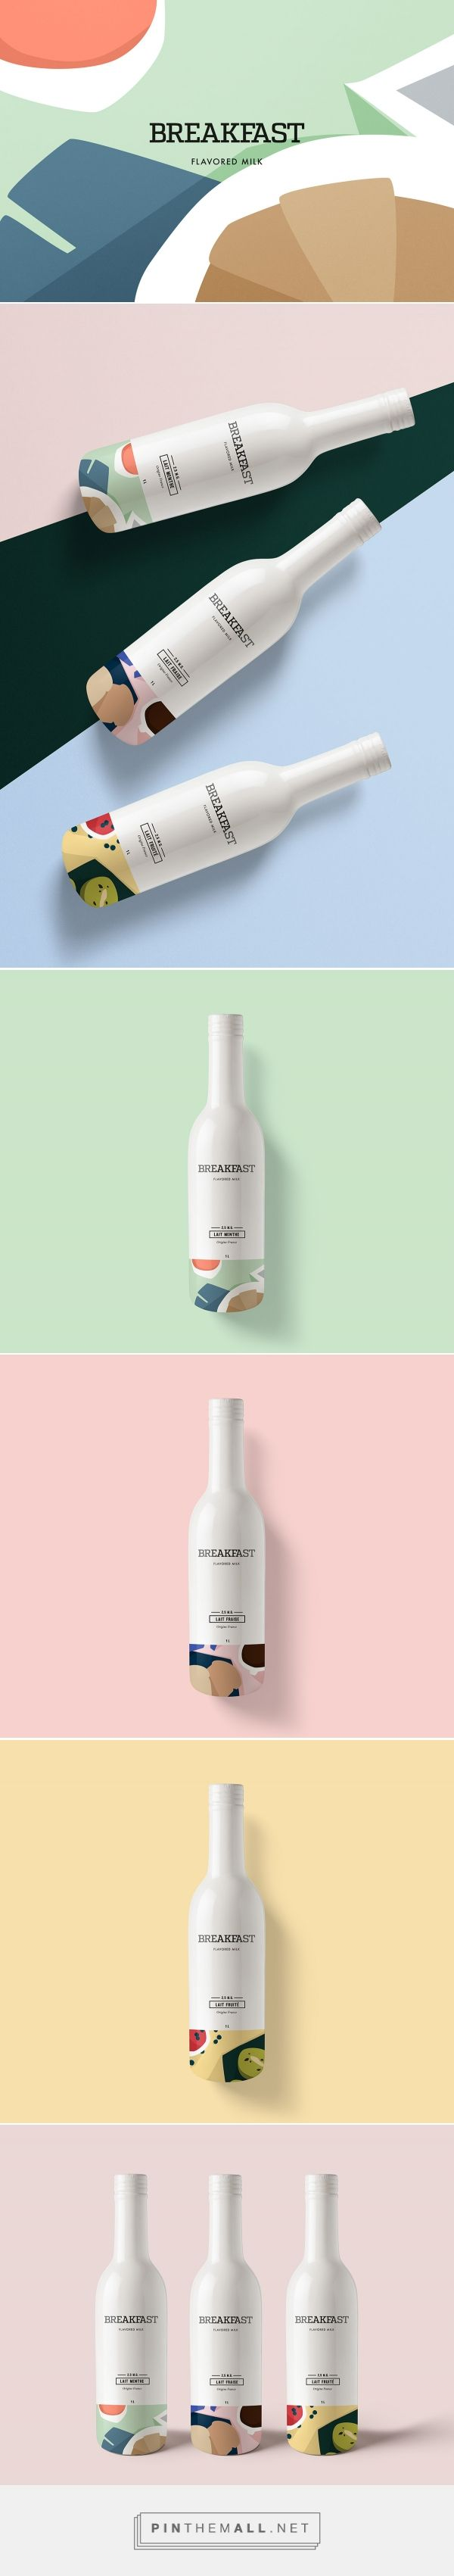 Breakfast Flavored Milk Packaging by Kali day | Fivestar Branding Agency – Design and Branding Agency & Curated Inspiration Gallery